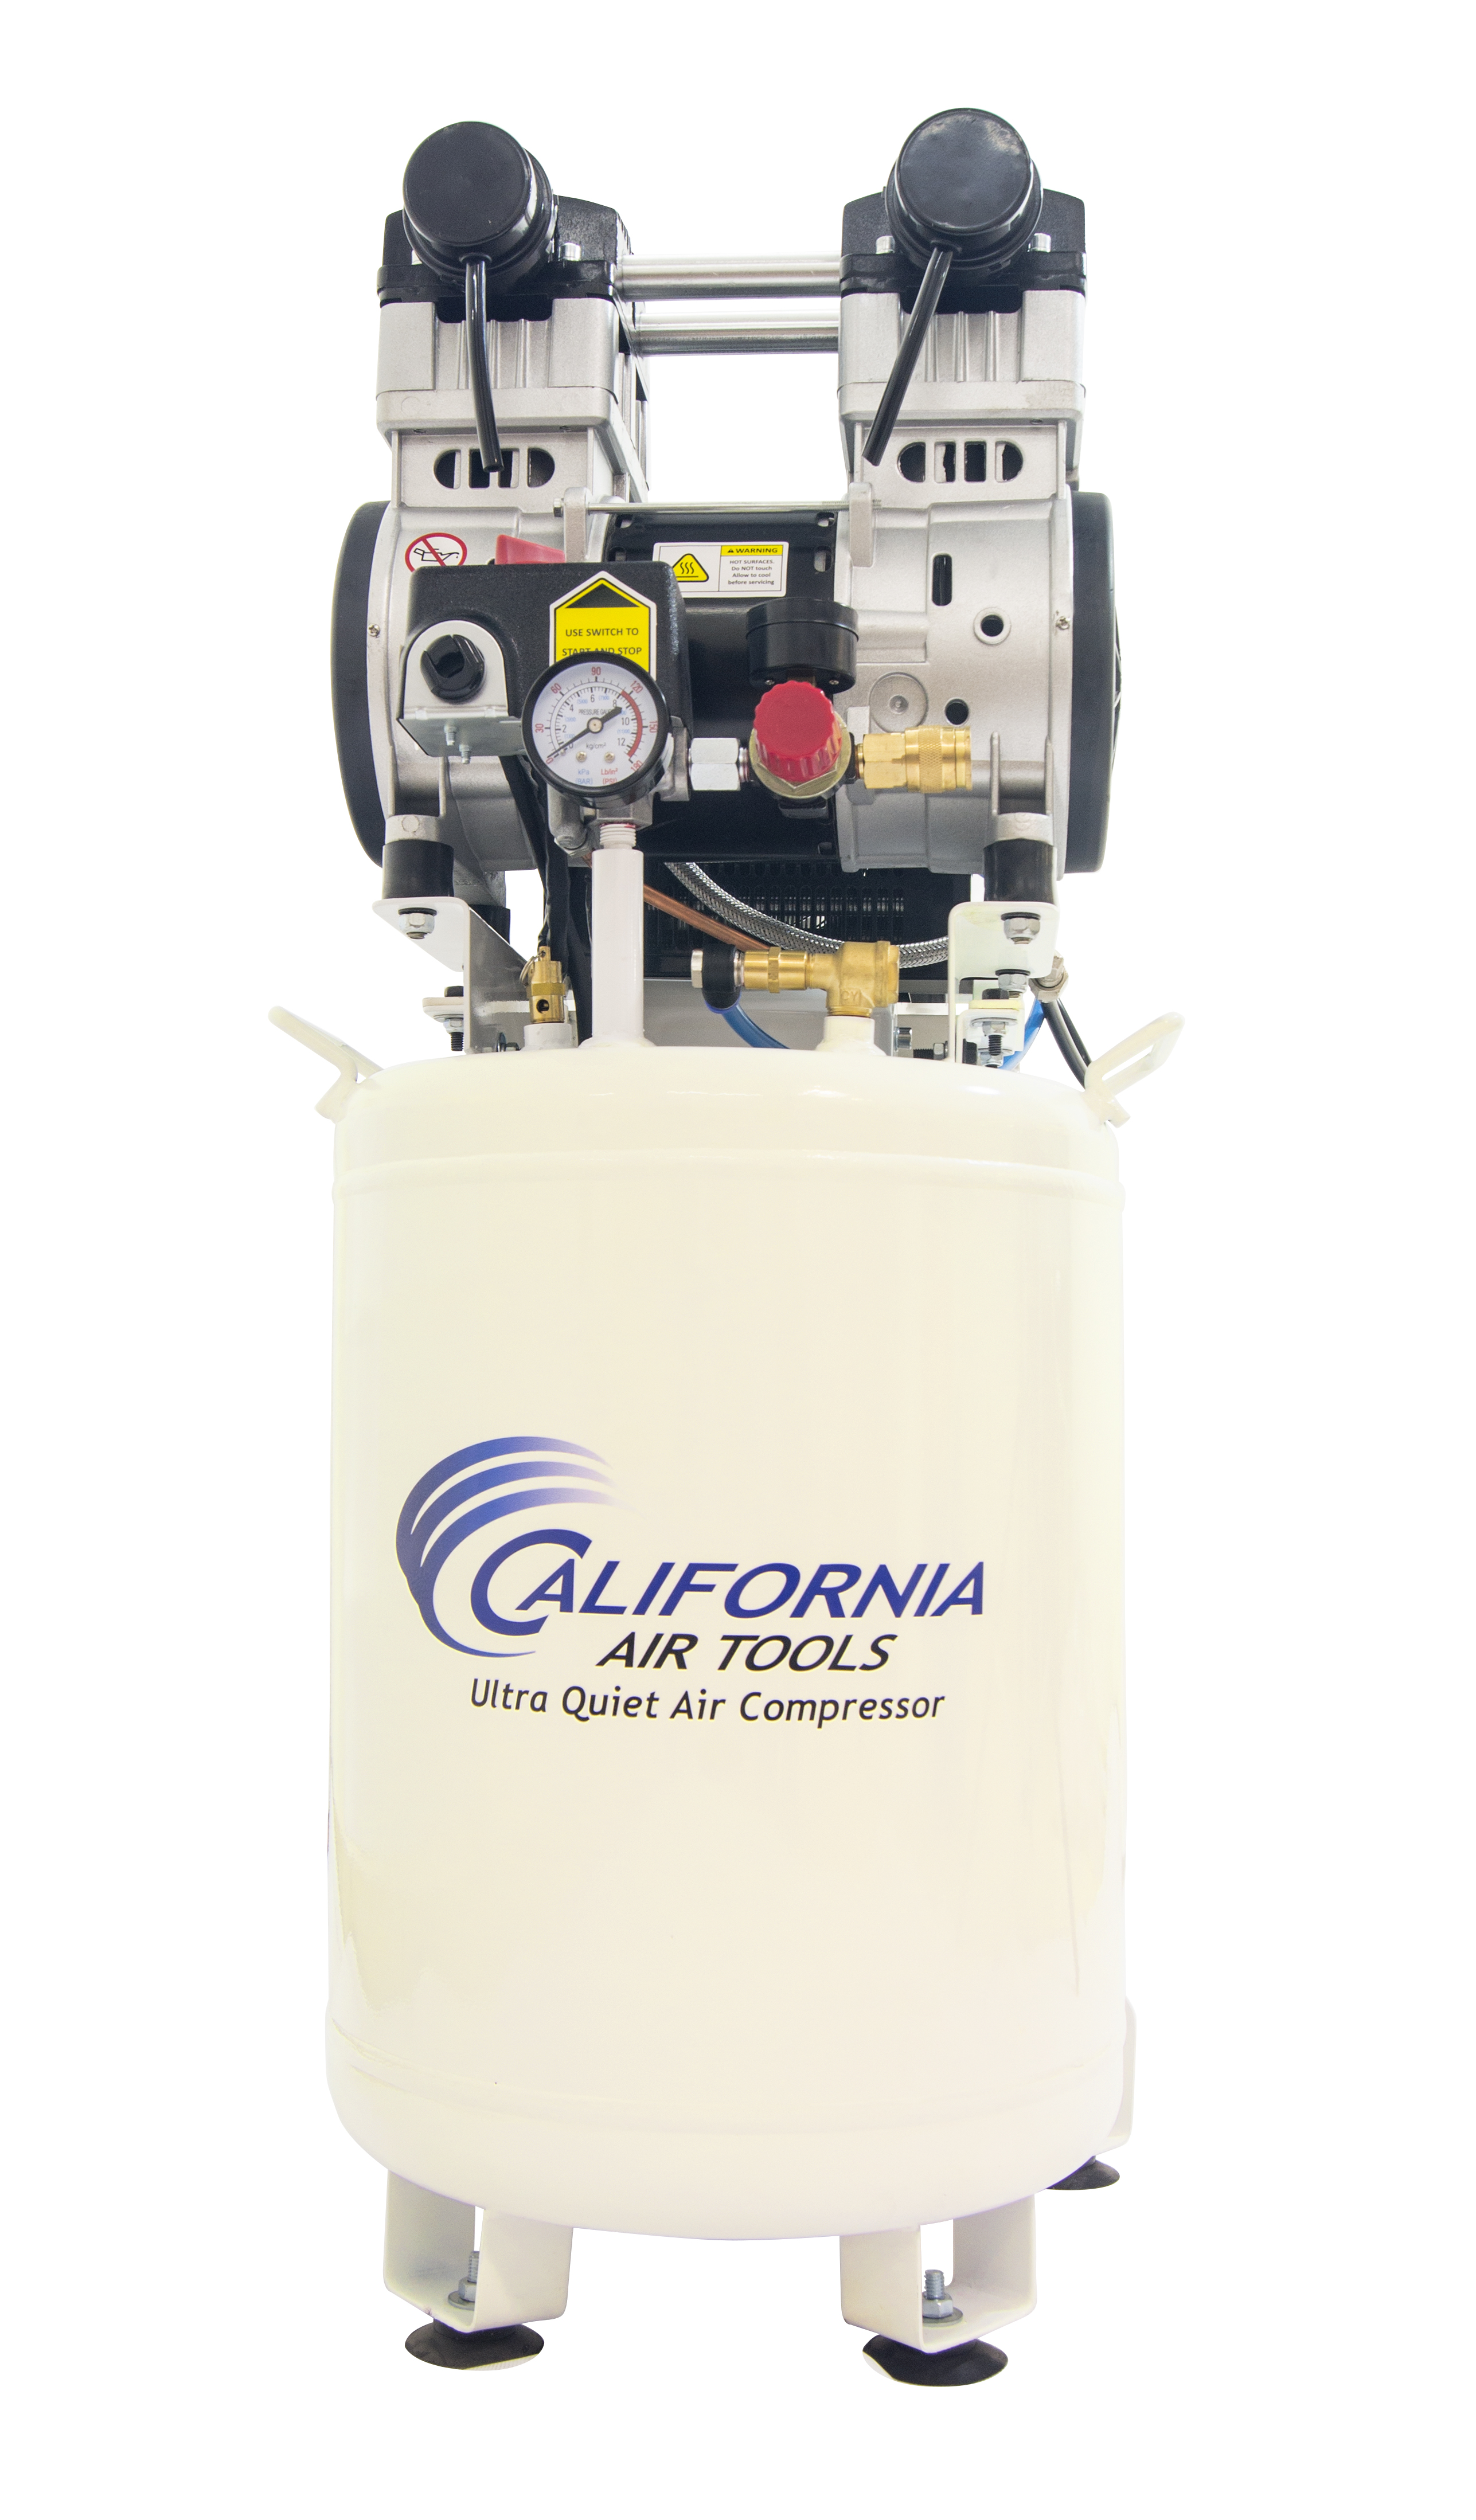 California Air Tools 10020DCAD-22060 Ultra Quiet & Oil-Free 2.0 Hp, 10.0 Gal. Steel Tank Air Compressor with Air Drying System (